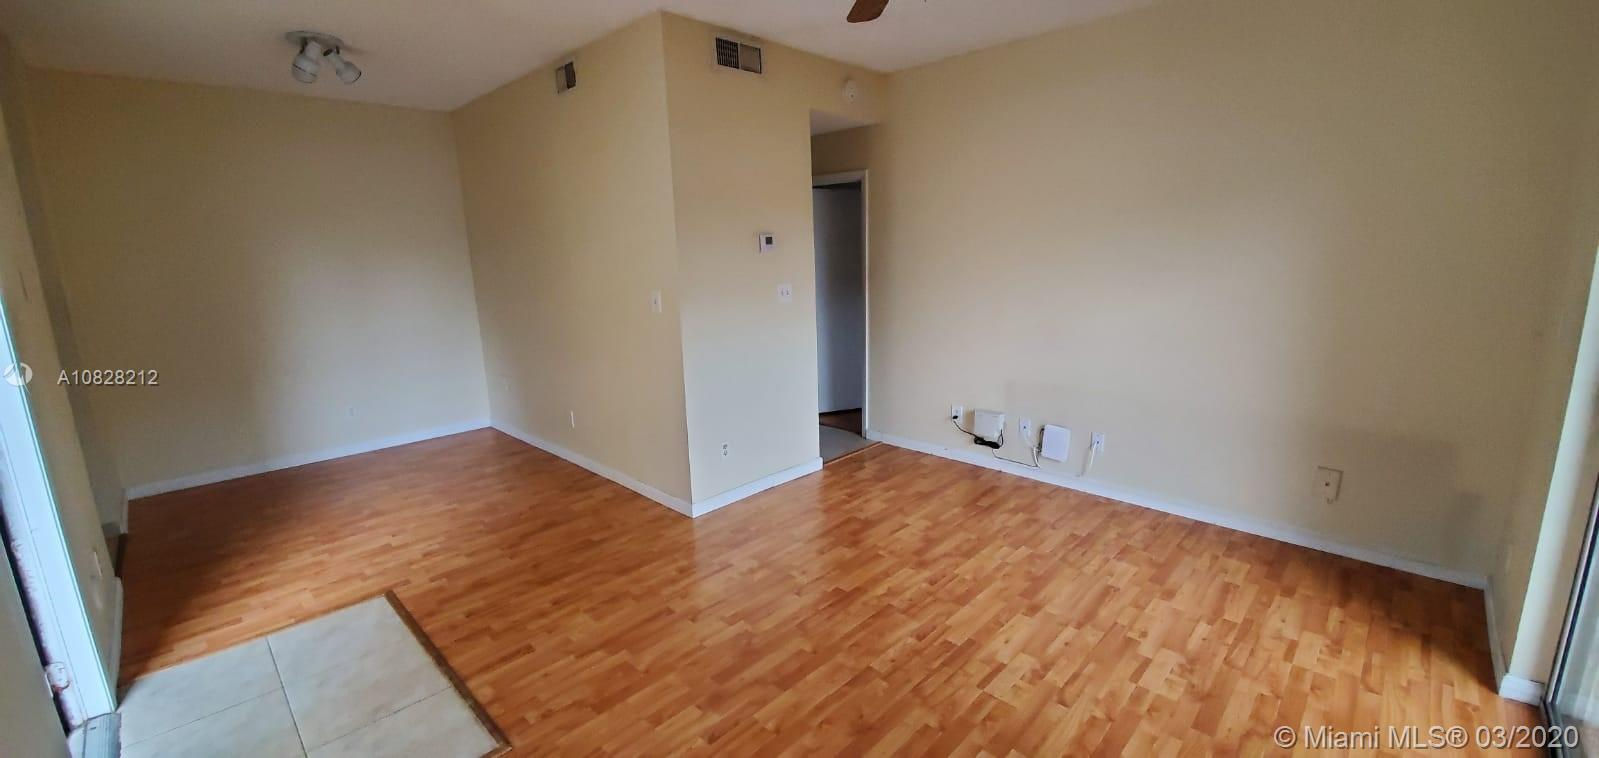 BRIGHT & SPACIOUS 1 BR 1 BATH IN GATED COMMUNITY!LAMINATE FLOORS THROUGHOUT, TILE FLOOR IN KITCHEN & BATHROOMS, PRIVATE SCREENED-IN PATIO, COMMUNITY OFFERS: 2 SWIMMING POOLS, TENNIS, FITNESS ROOM, NICE, CLEAN & READY NOW! REQUIRED CREDIT SCORE 620 OR HIGHER! **REQUIRES CREDIT SCORE 620 OR HIGHER**